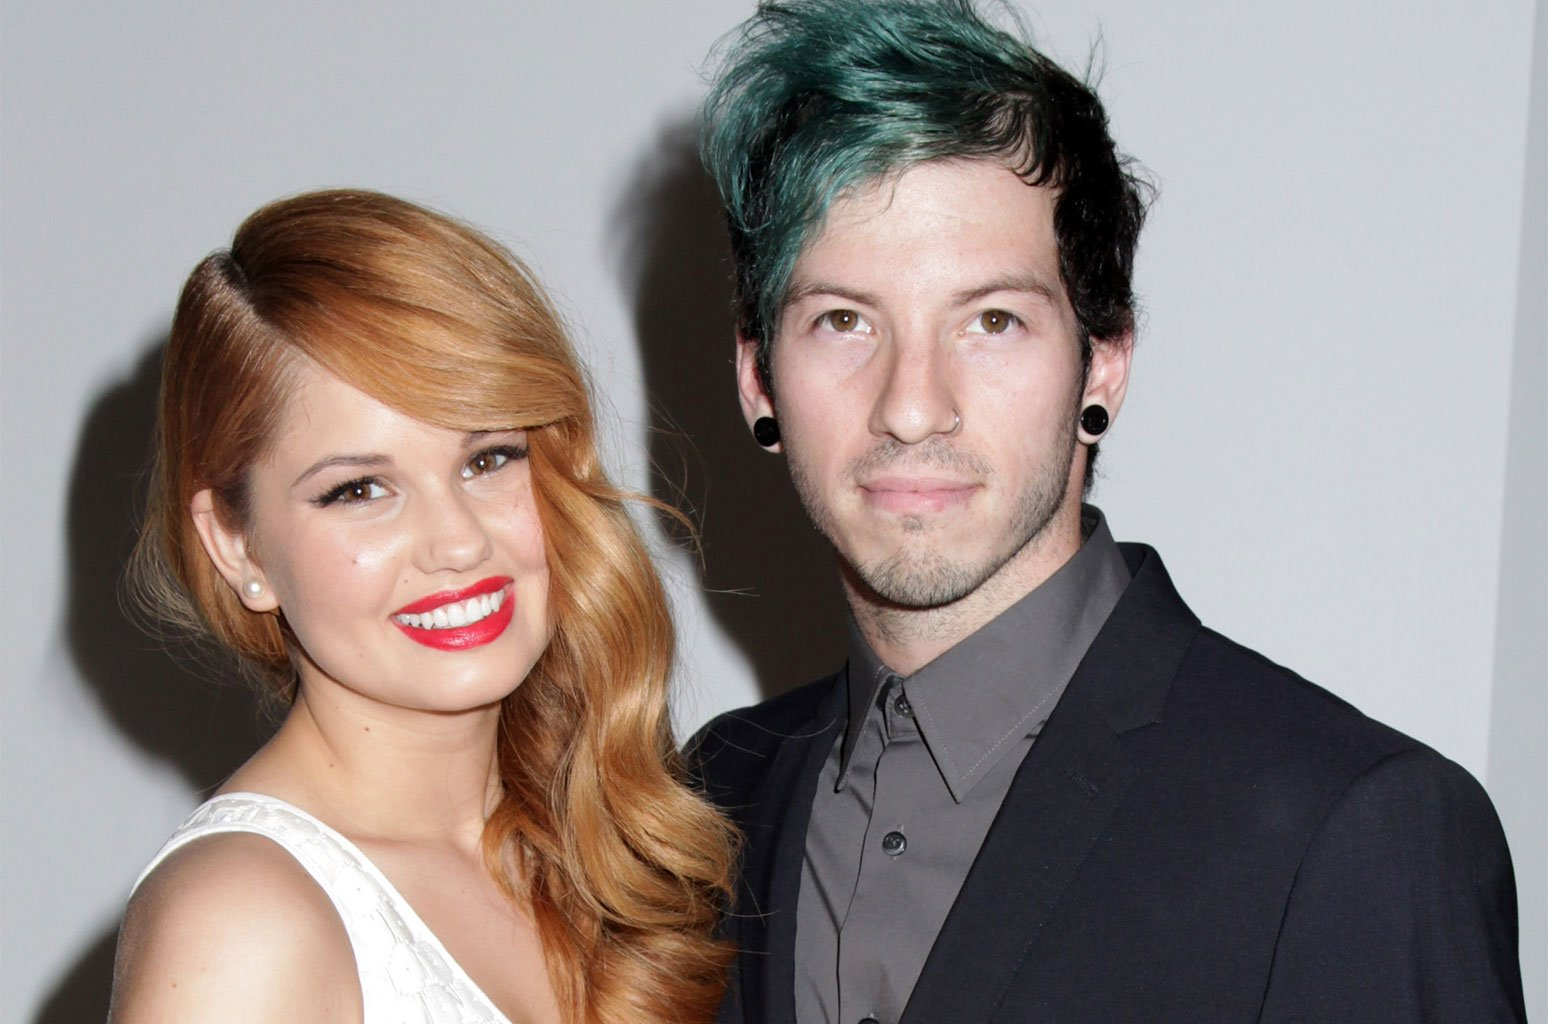 Debby Ryan And Josh Dun – Inside Their Baby Plans After Getting Married In Secret!